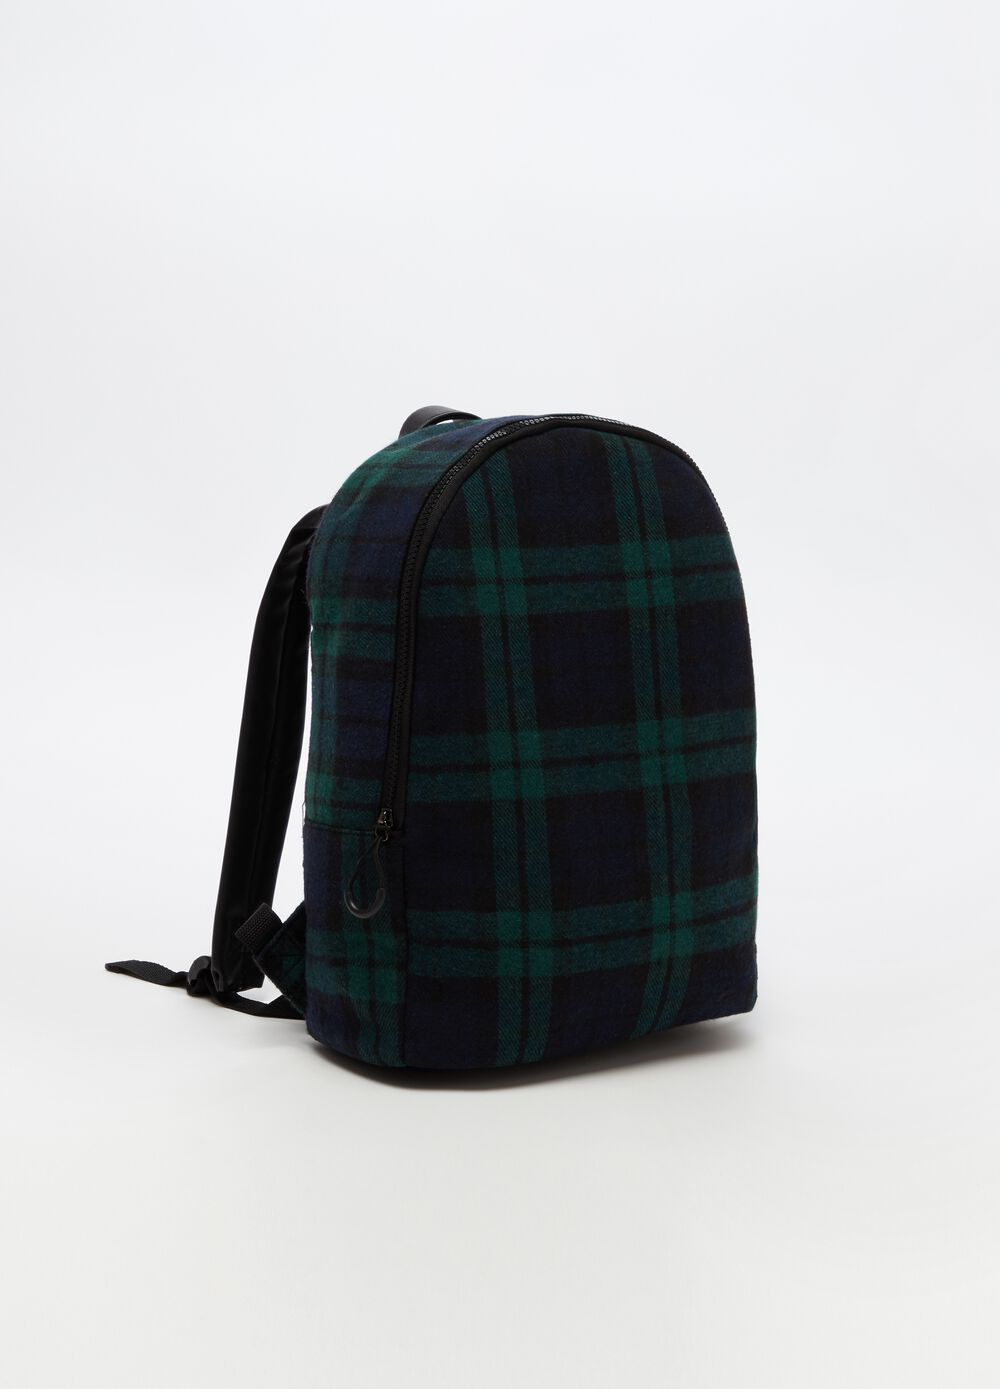 Backpack with zip and check pattern